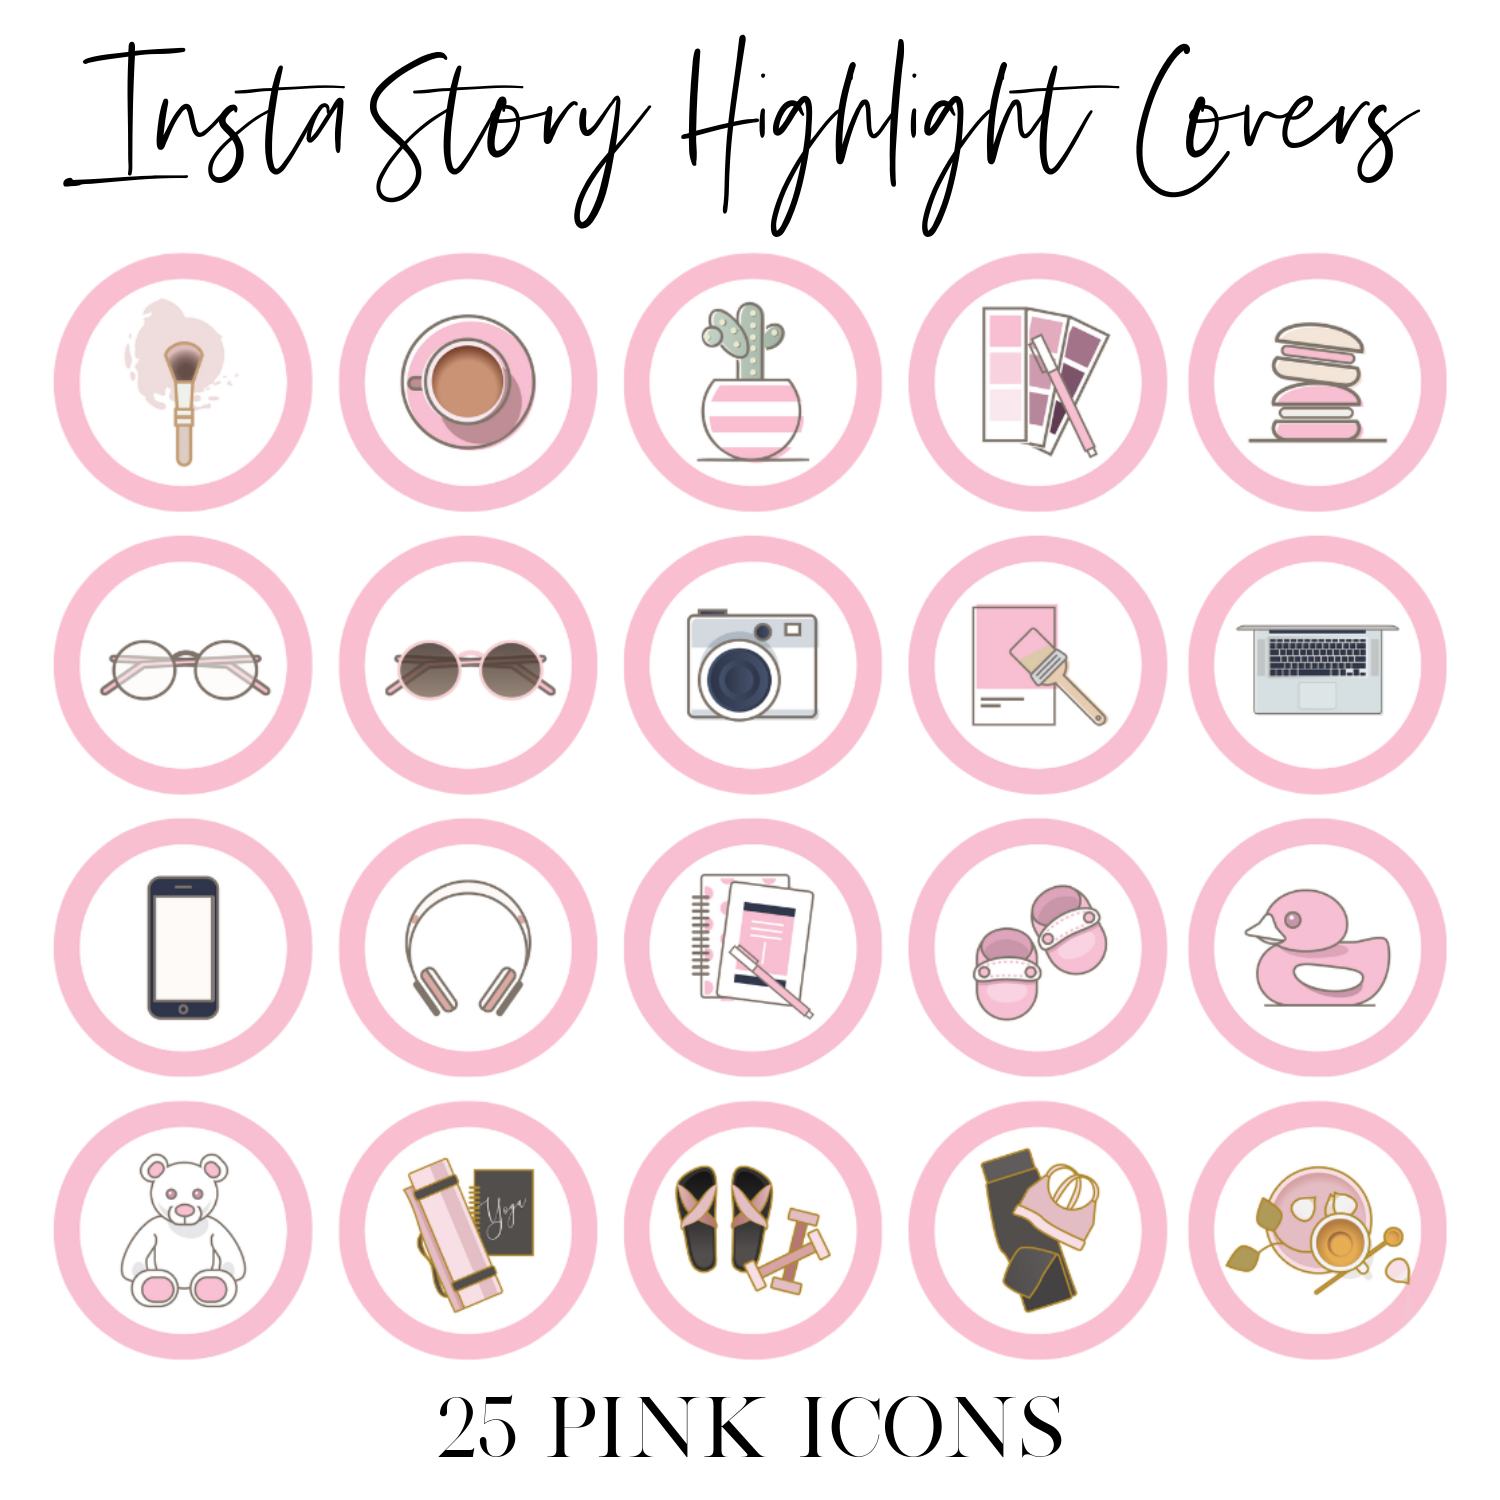 Instagram Story Highlight Covers Pink Icons Girlcrush Collective